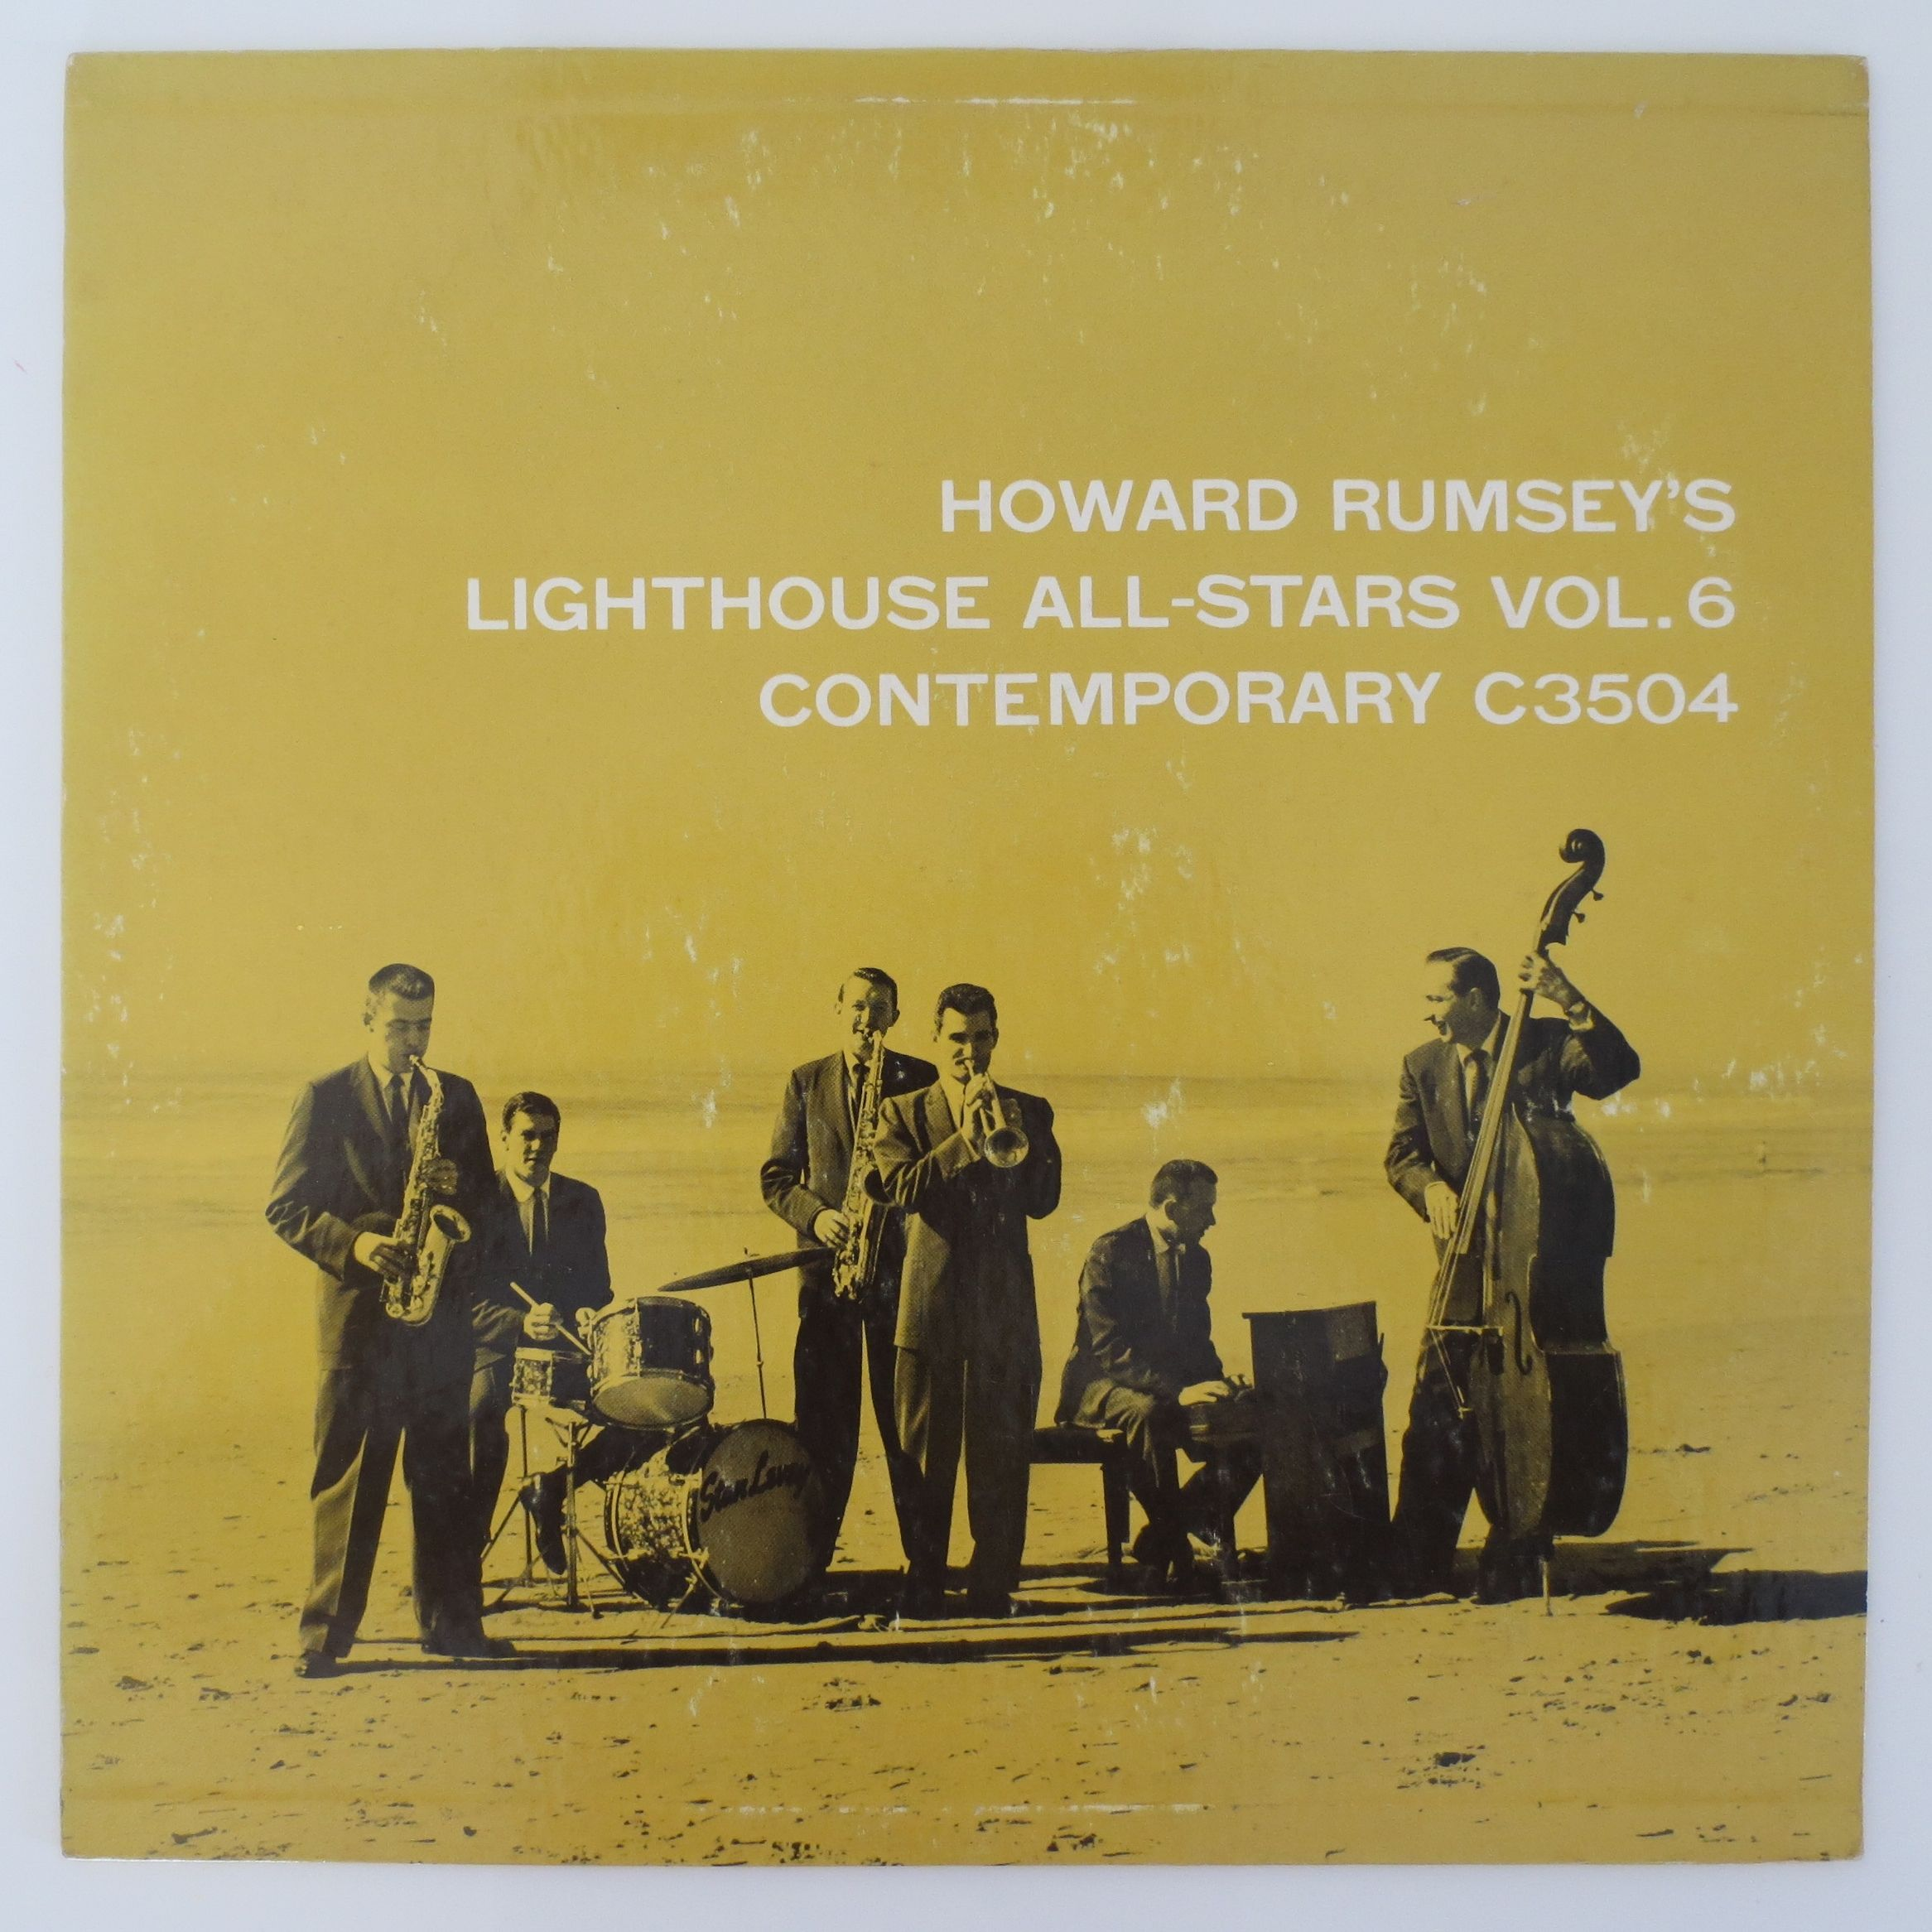 Howard Rumsey's Lighthouse All-Stars - Vol. 6